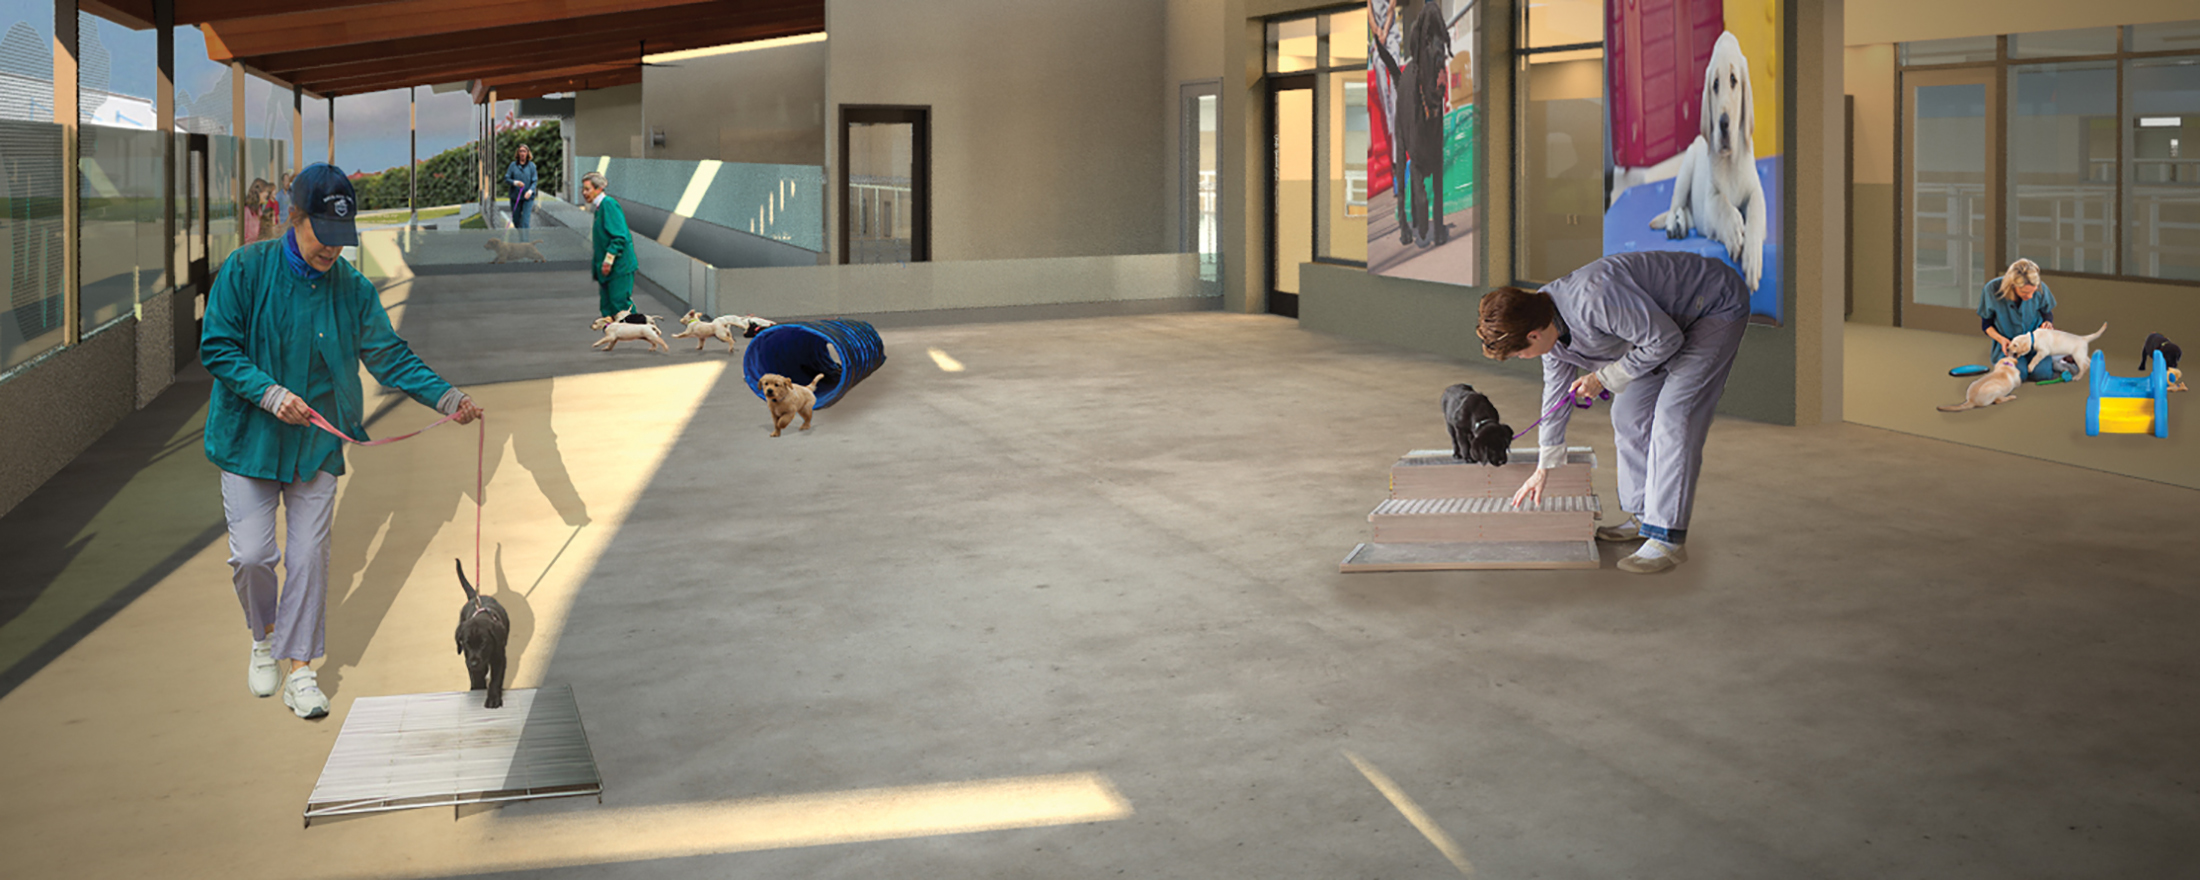 An architect's rendering of the outdoor puppy socialization area of the Puppy Center